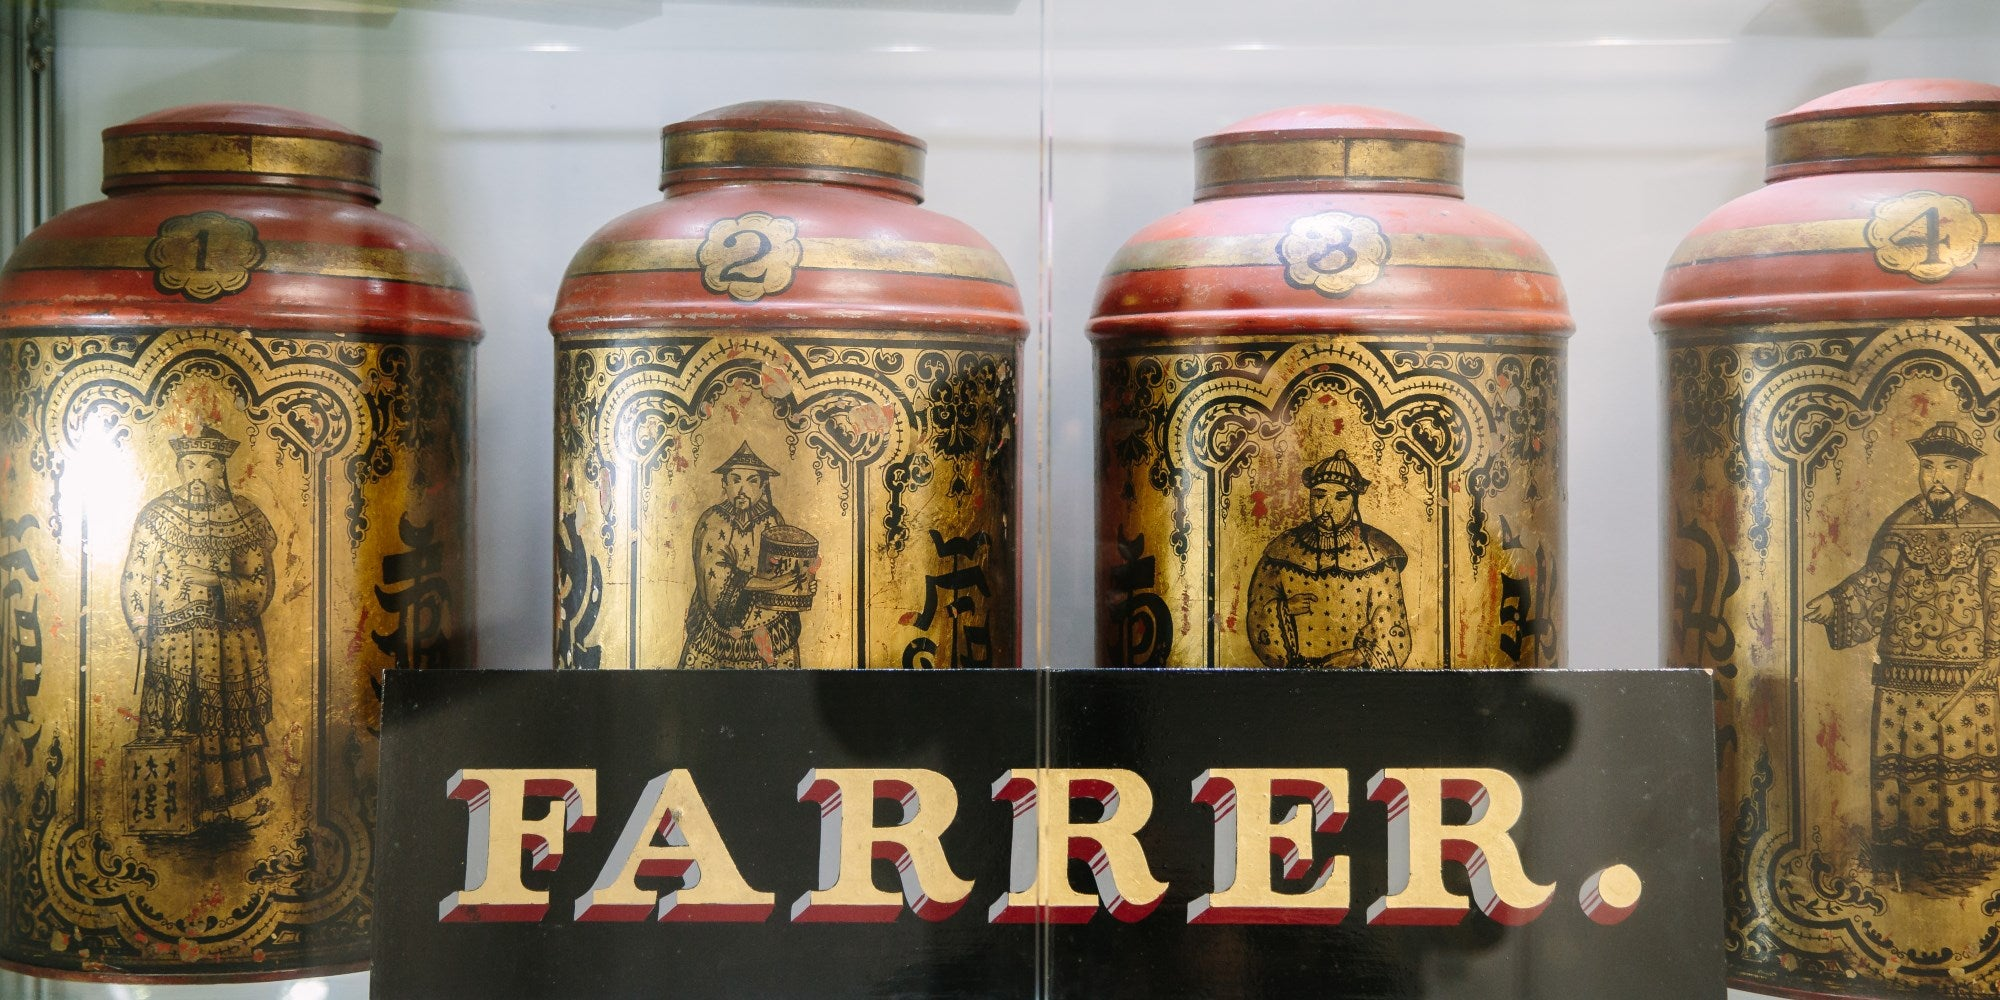 farrers are the oldest coffee roaster in the uk